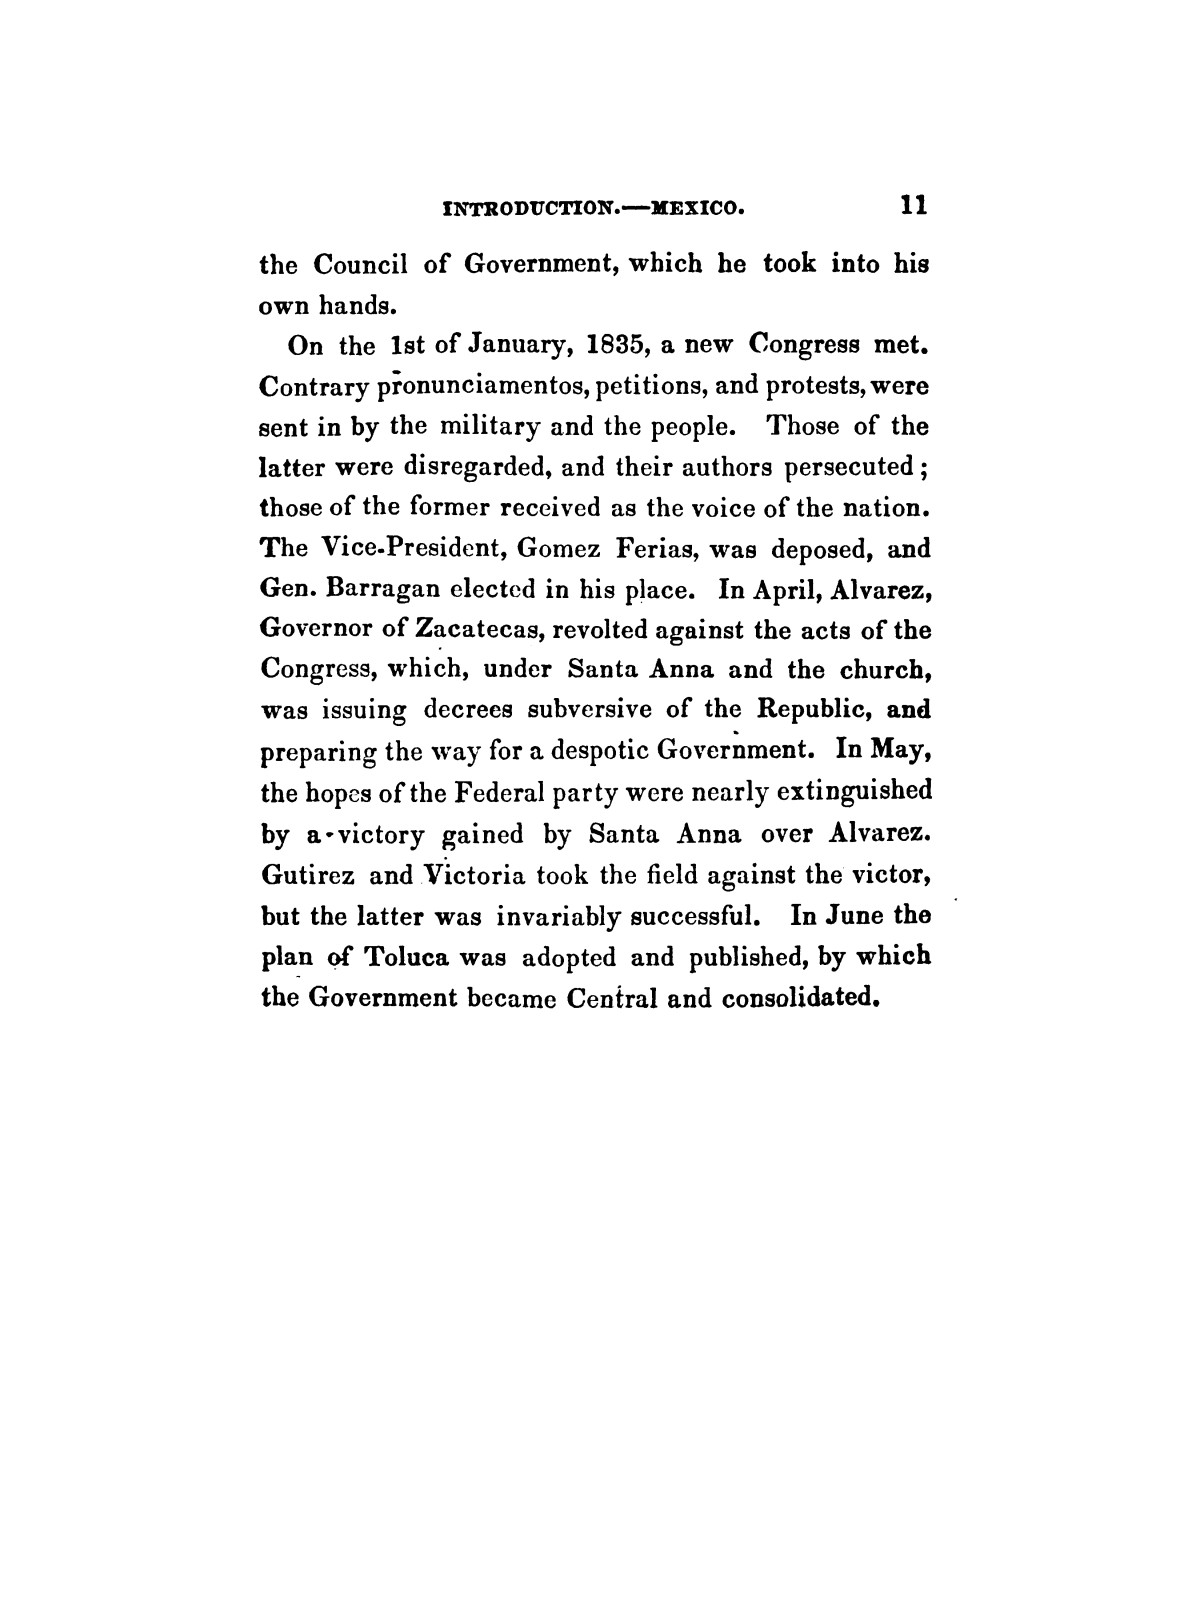 History of the revolution in Texas, particularly of the war of 1835 & '36; together with the latest geographical, topographical, and statistical accounts of the country, from the most authentic sources. Also, an appendix. By the Rev. C. Newell.                                                                                                      [Sequence #]: 23 of 227